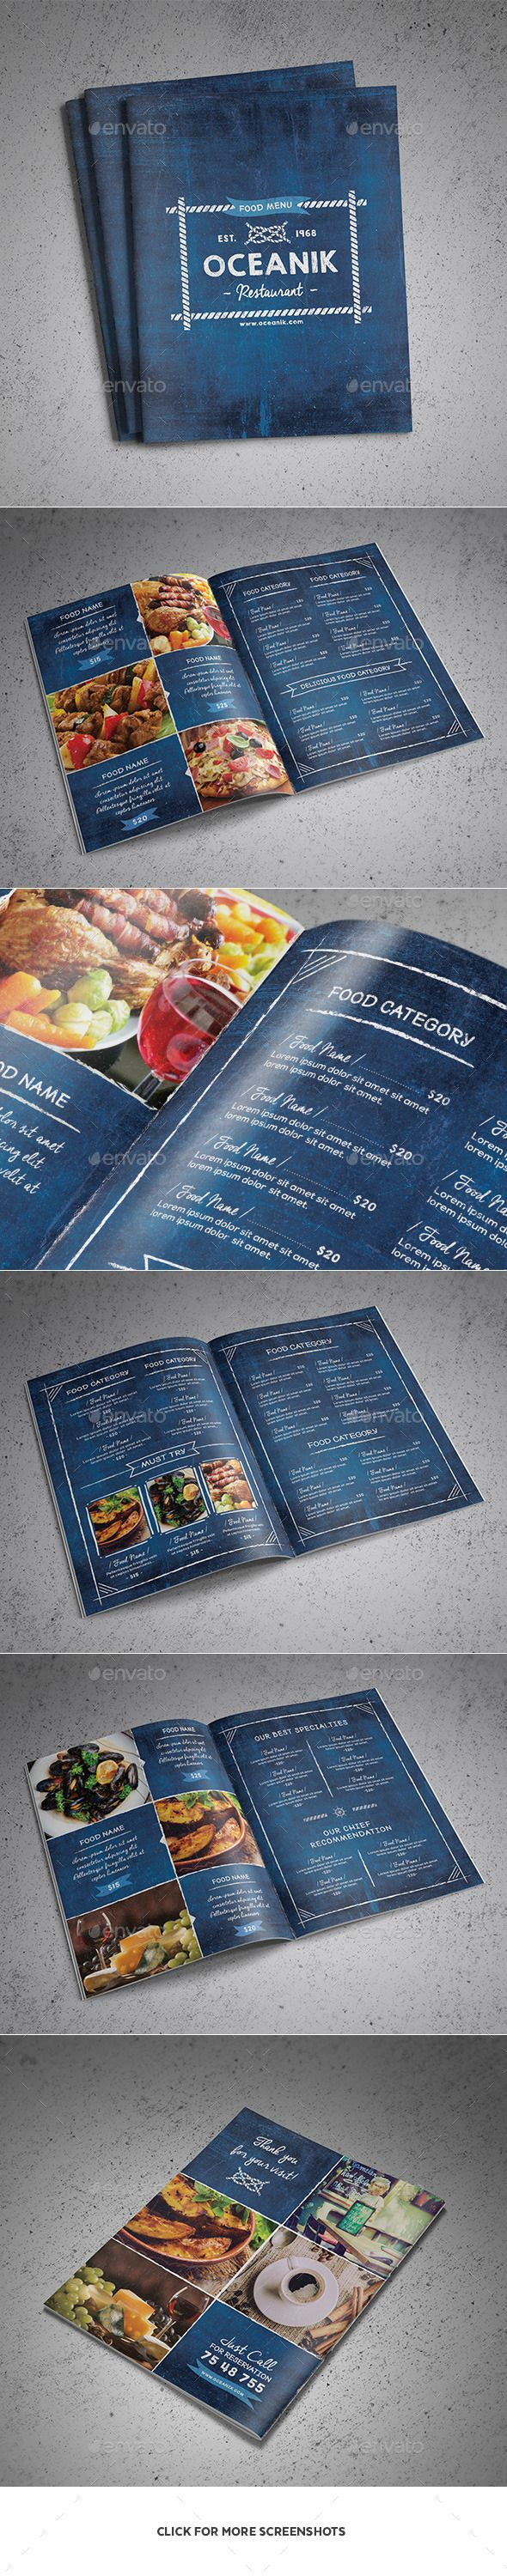 Oceanik Restaurant Menu 8 Pages Template #design Download: http://graphicriver.net/item/oceanik-restaurant-menu-8-pages/13285010?ref=ksioks